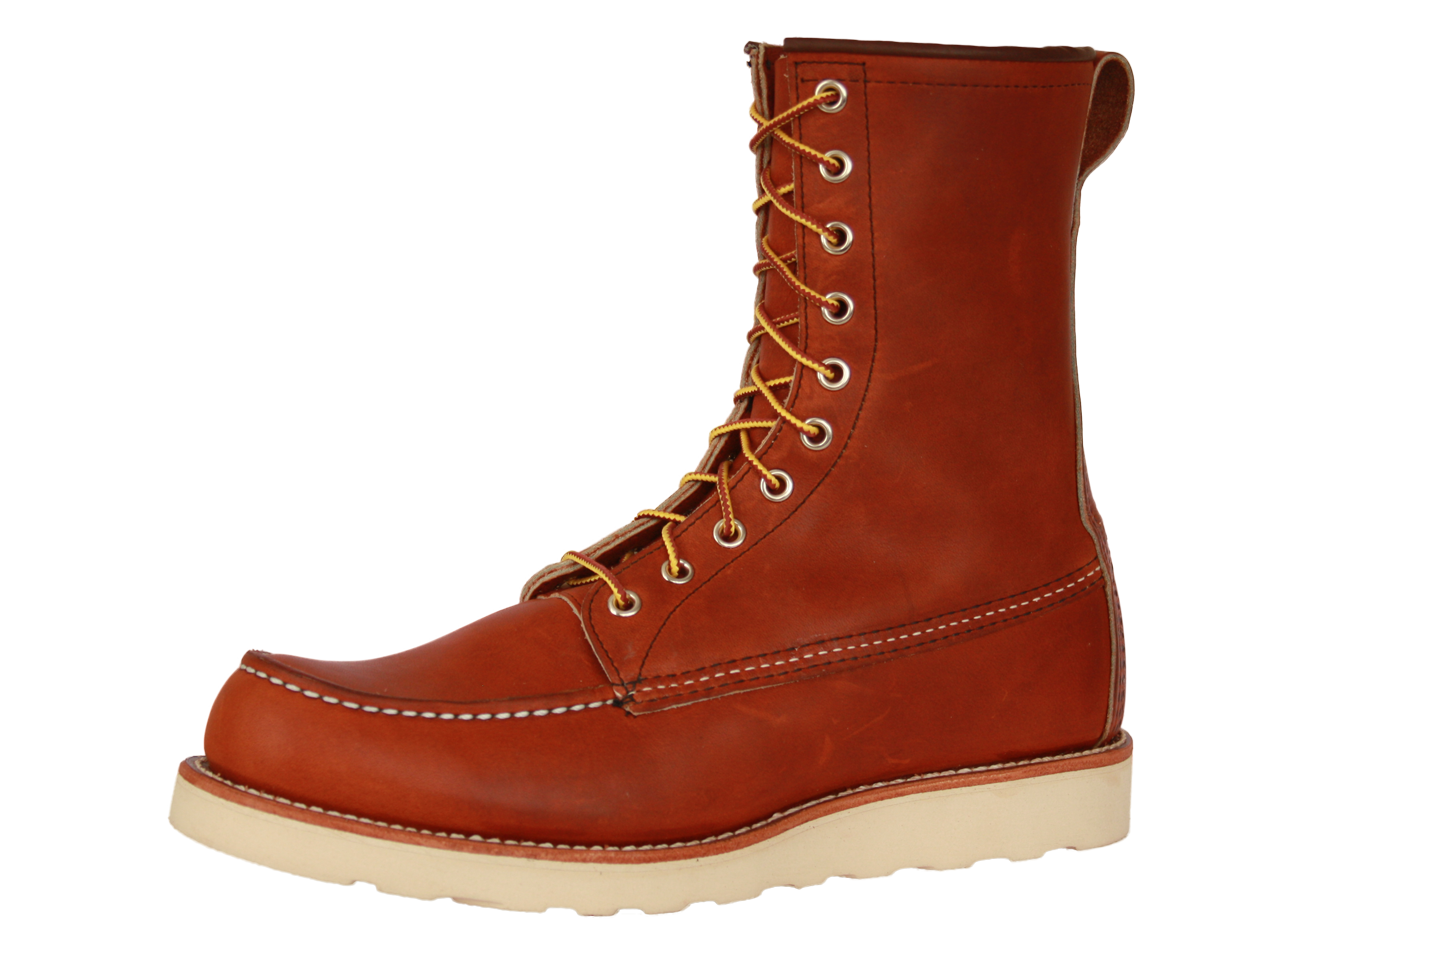 Red Wing Irish Setter Boots Warranty 39